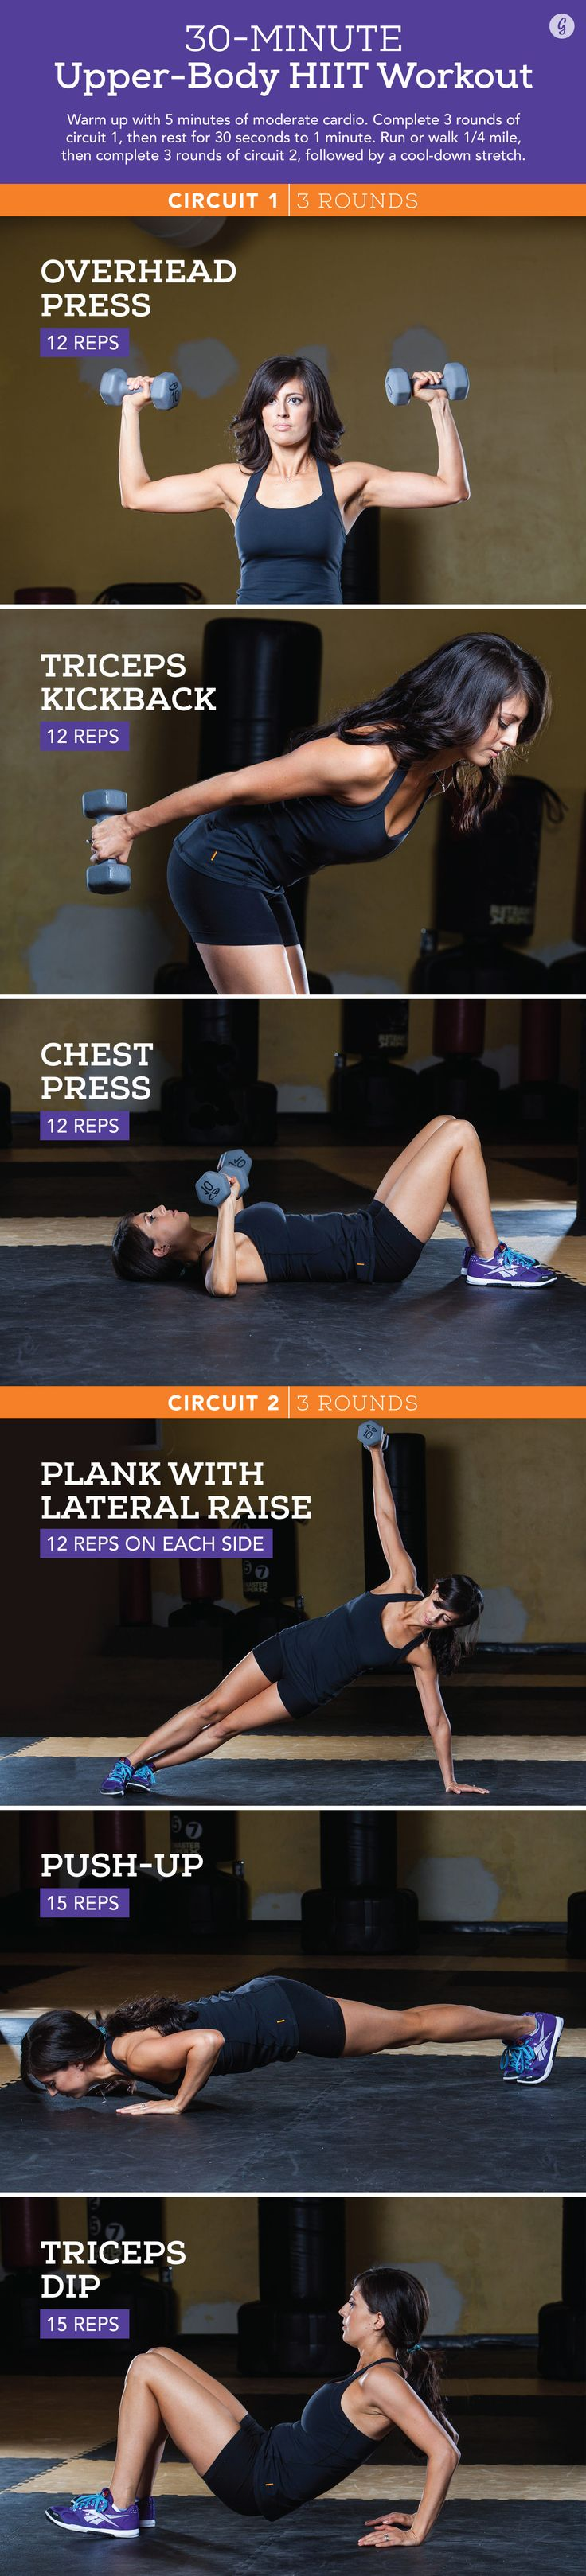 "The saying ""less is more"" has never been so true. In less than 30 minutes, you'll target and strengthen every muscle above your waist. #hiit #workout #arms #fitness http://greatist.com/move/quick-upper-body-hiit-workout"